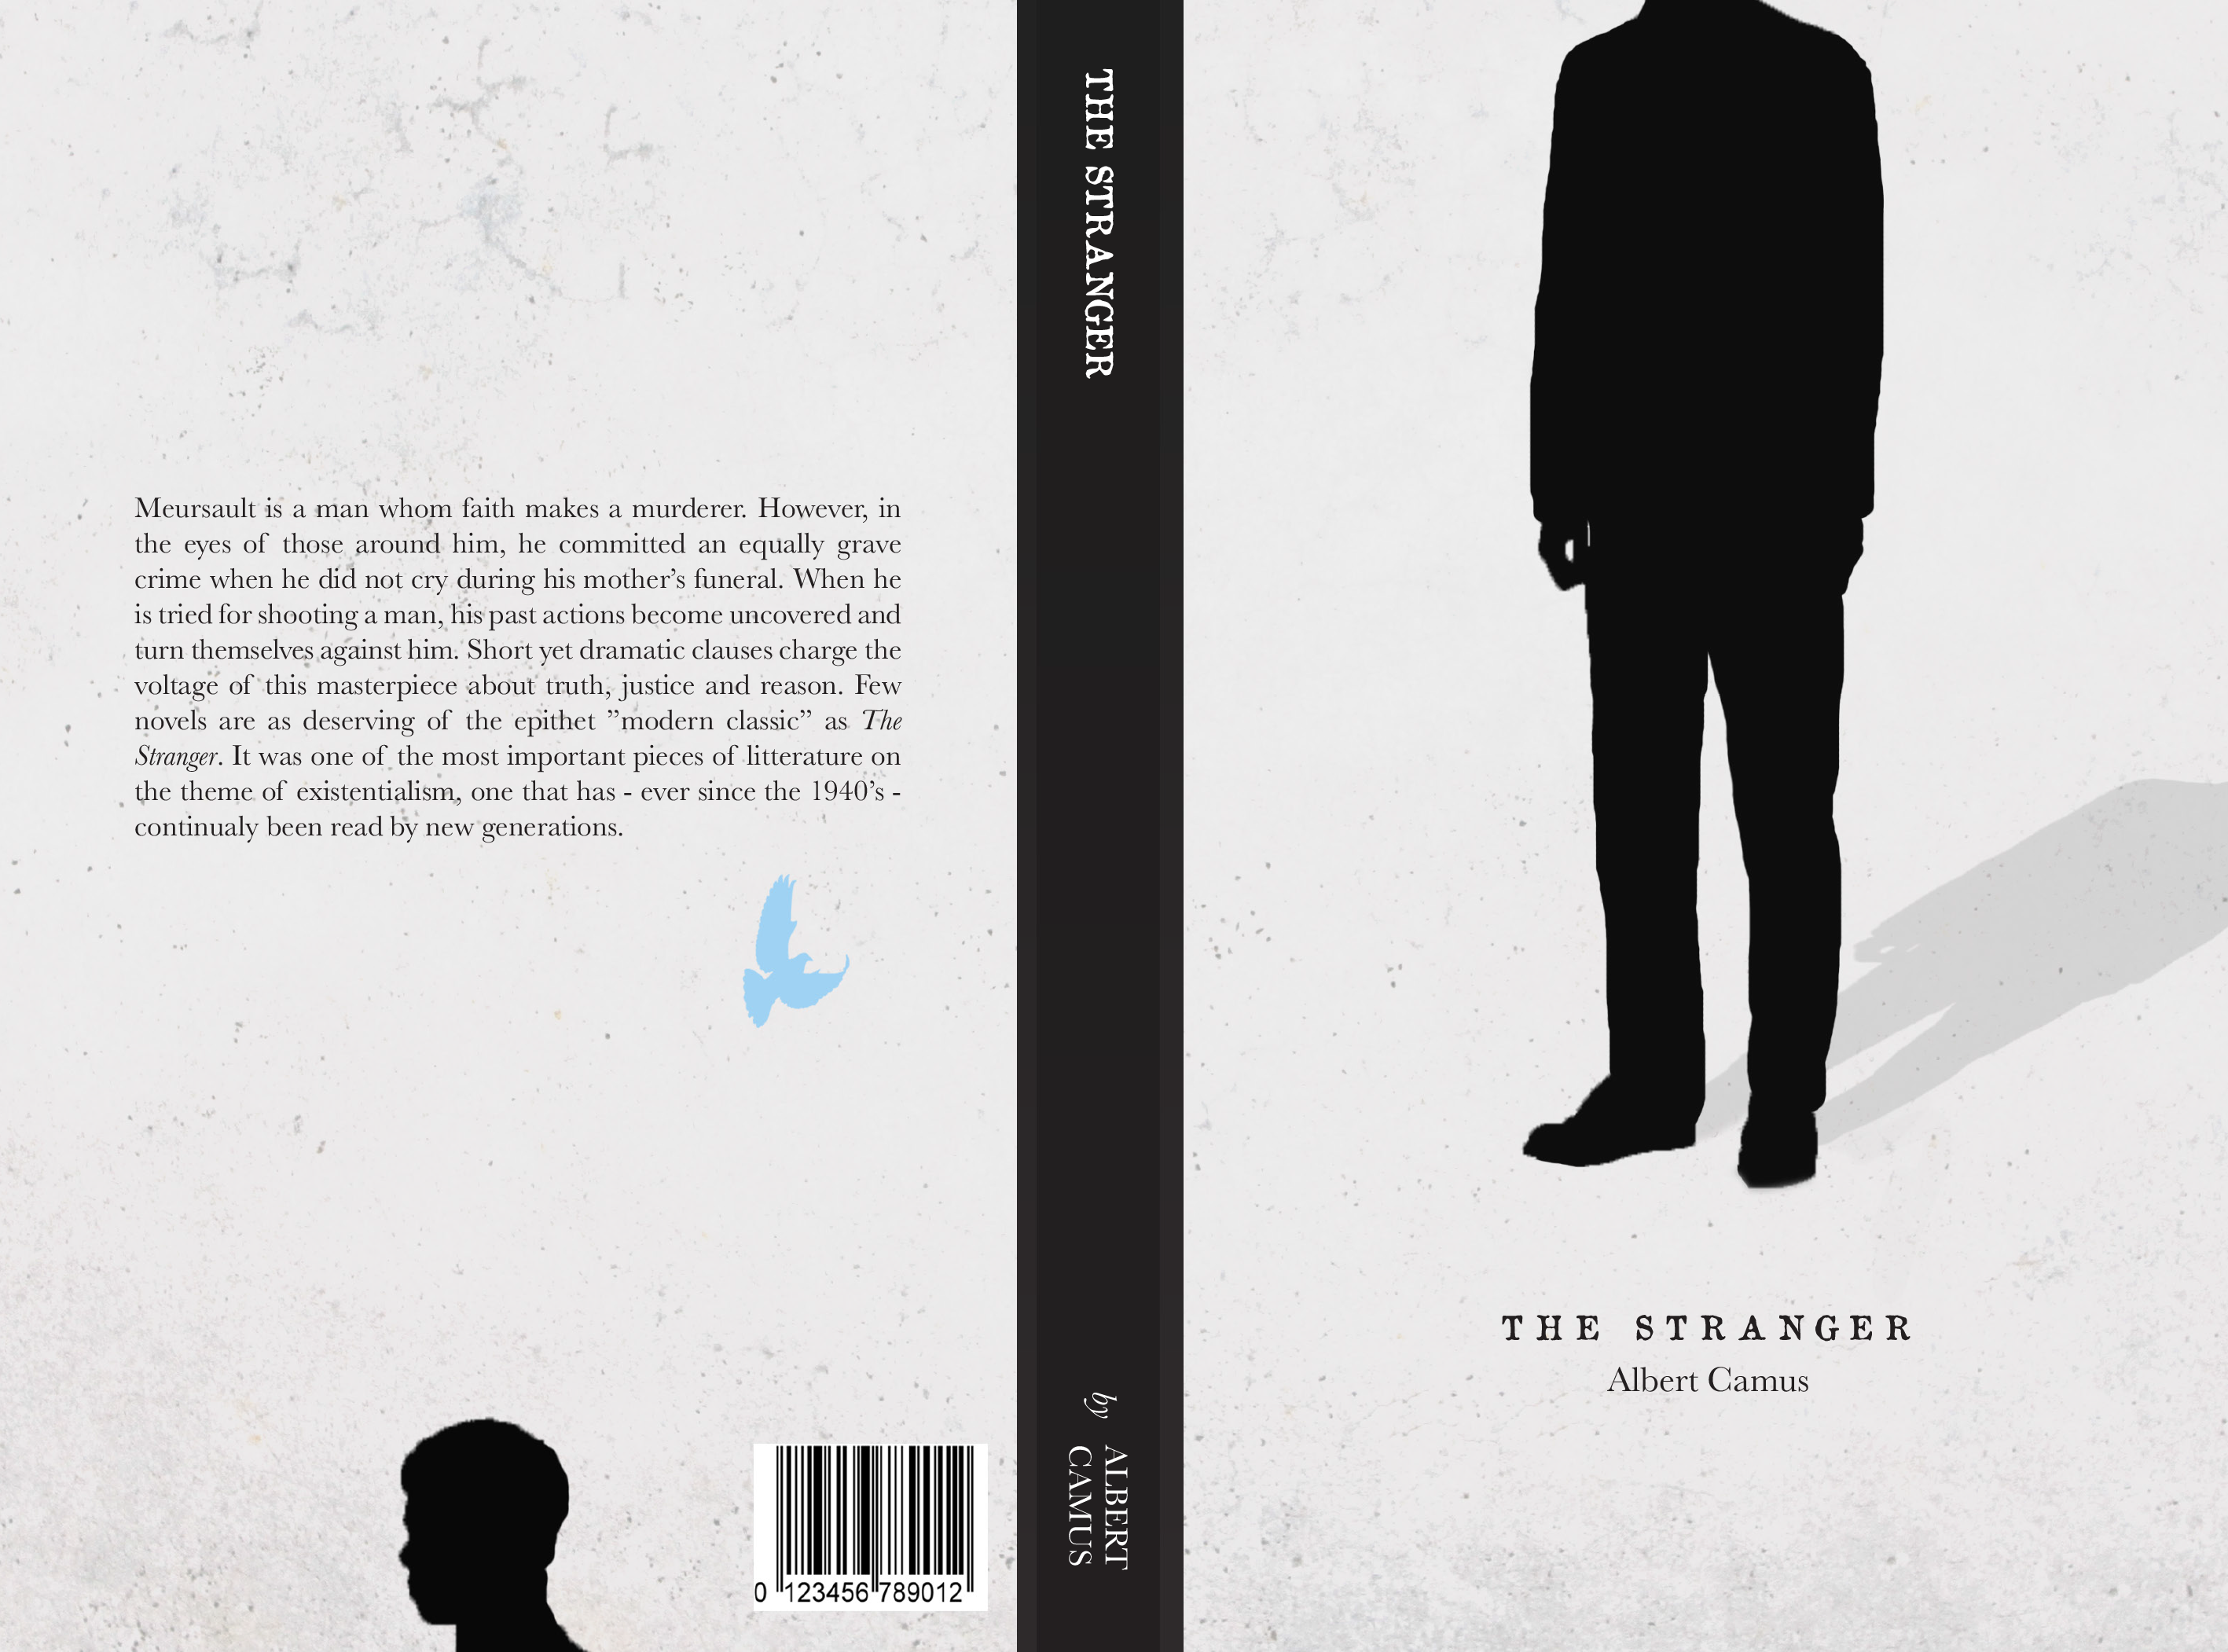 book cover for the stranger l etranger by albert camus the  book cover for the stranger l etranger by albert camus